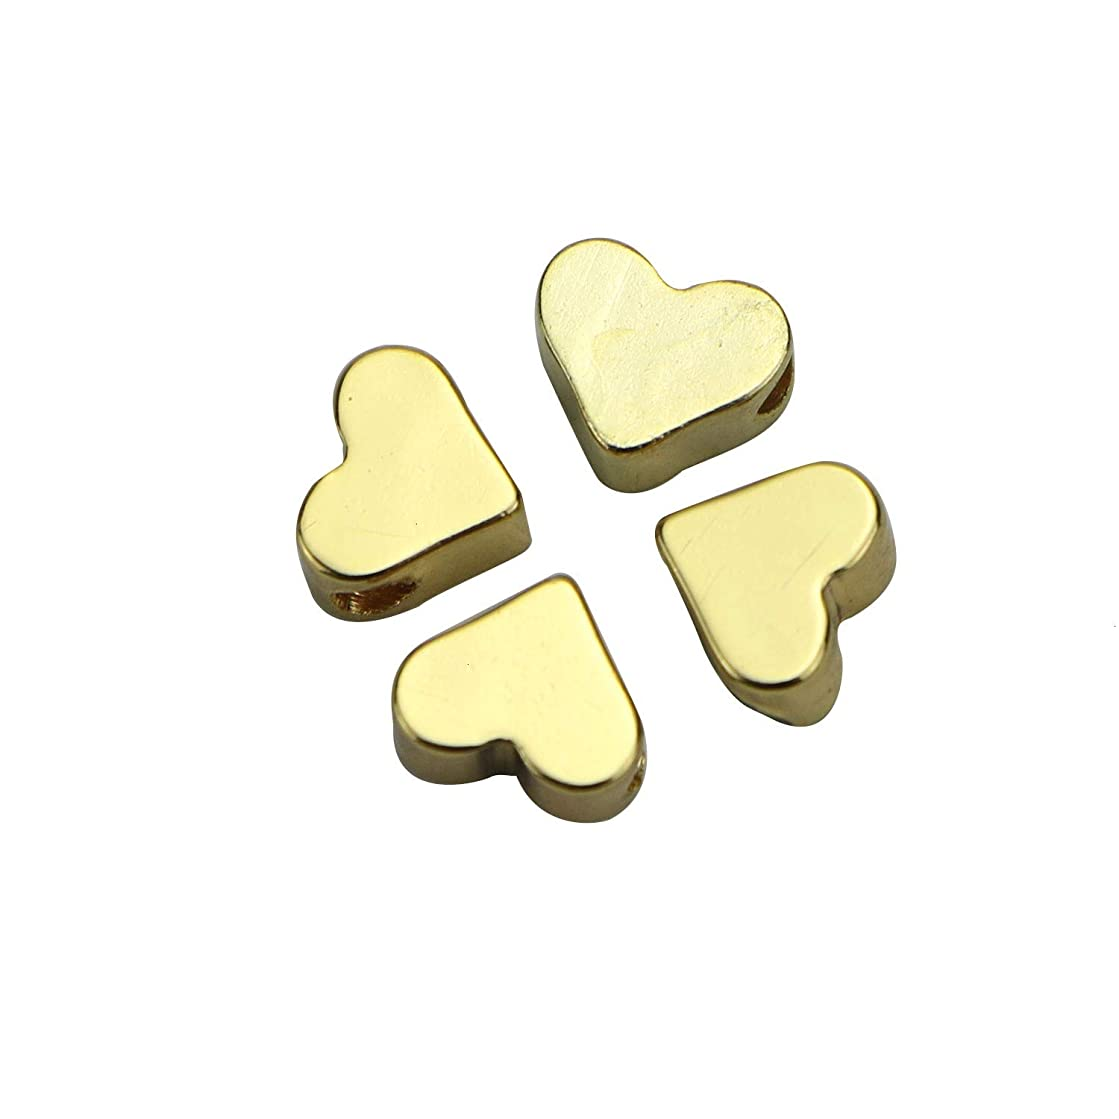 Monrocco 30PCS Gold Heart Small Hole Spacer Beads Fits DIY Handmade Charms Bracelets Accessories for Jewelry Making (76mm)